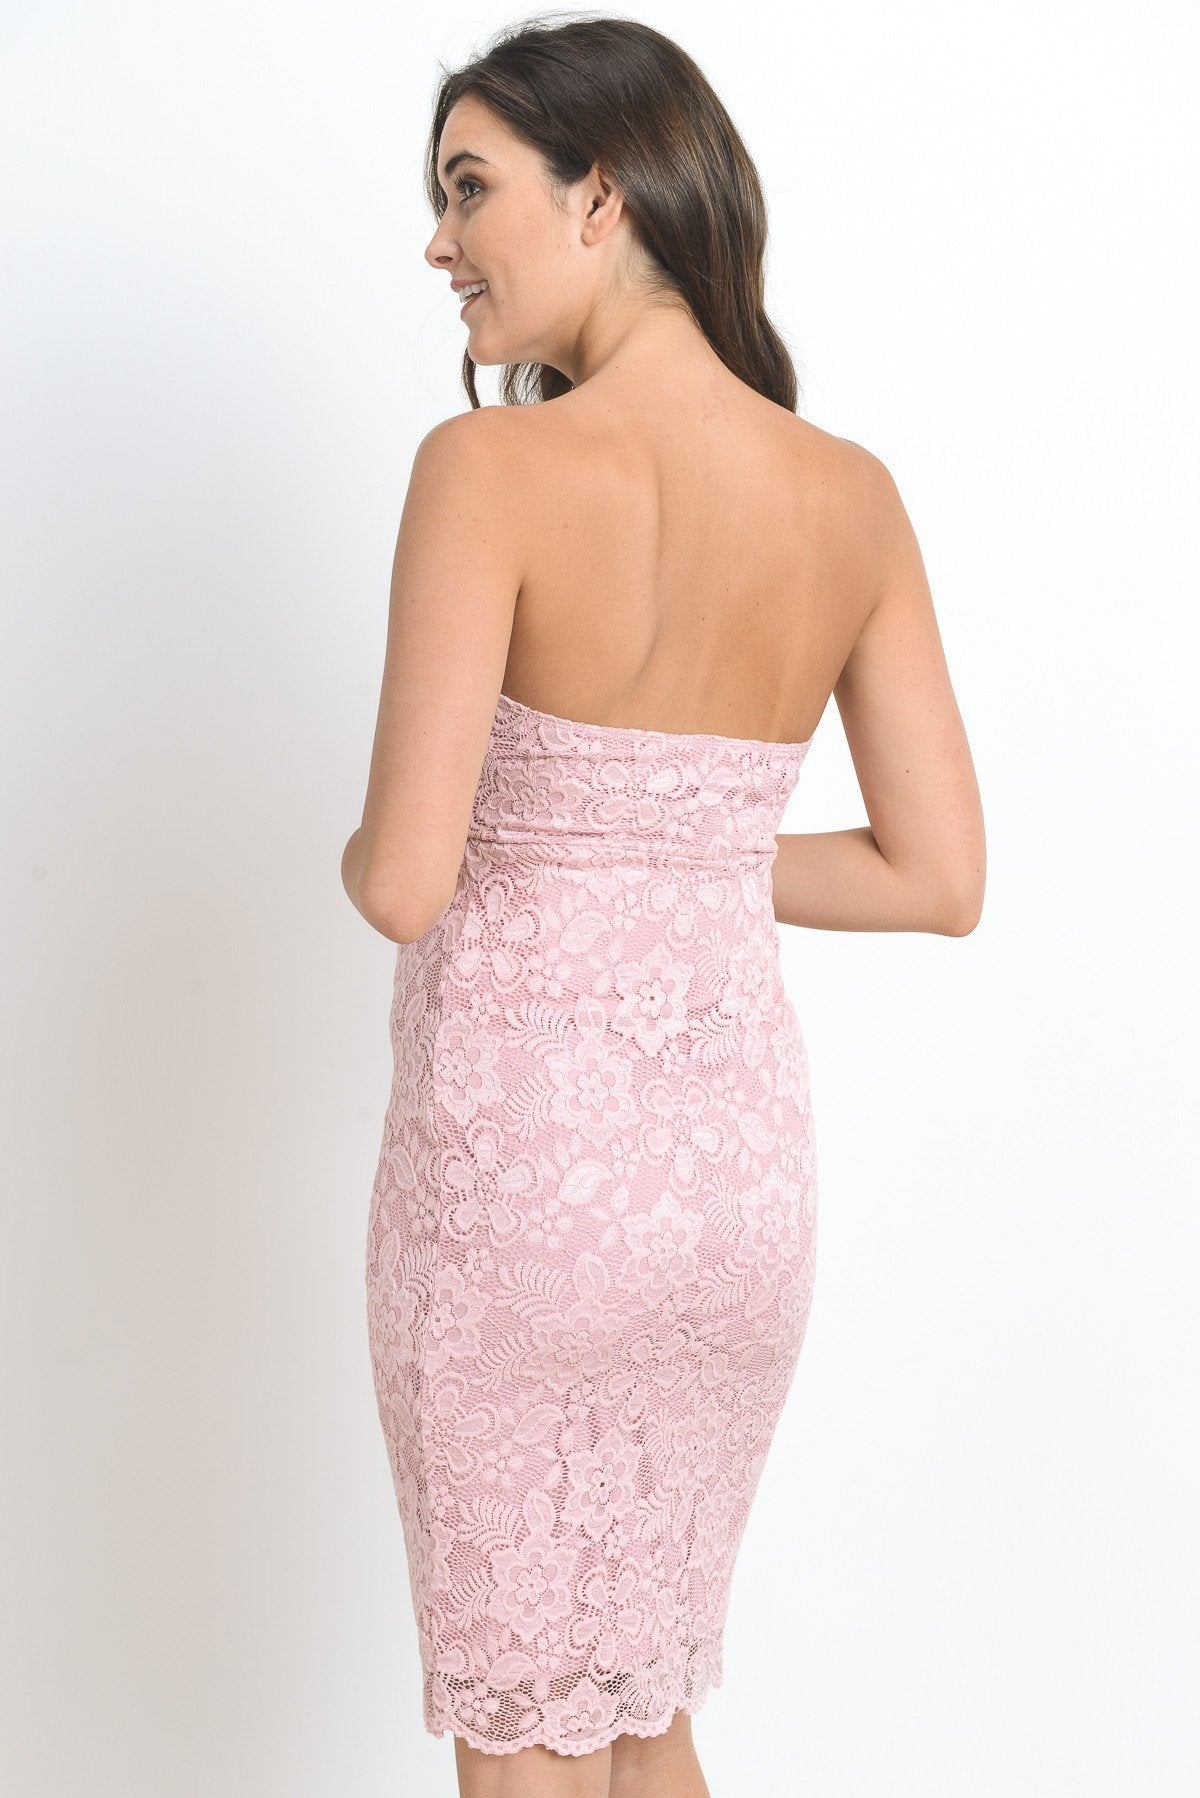 Strapless Lace Maternity Dress